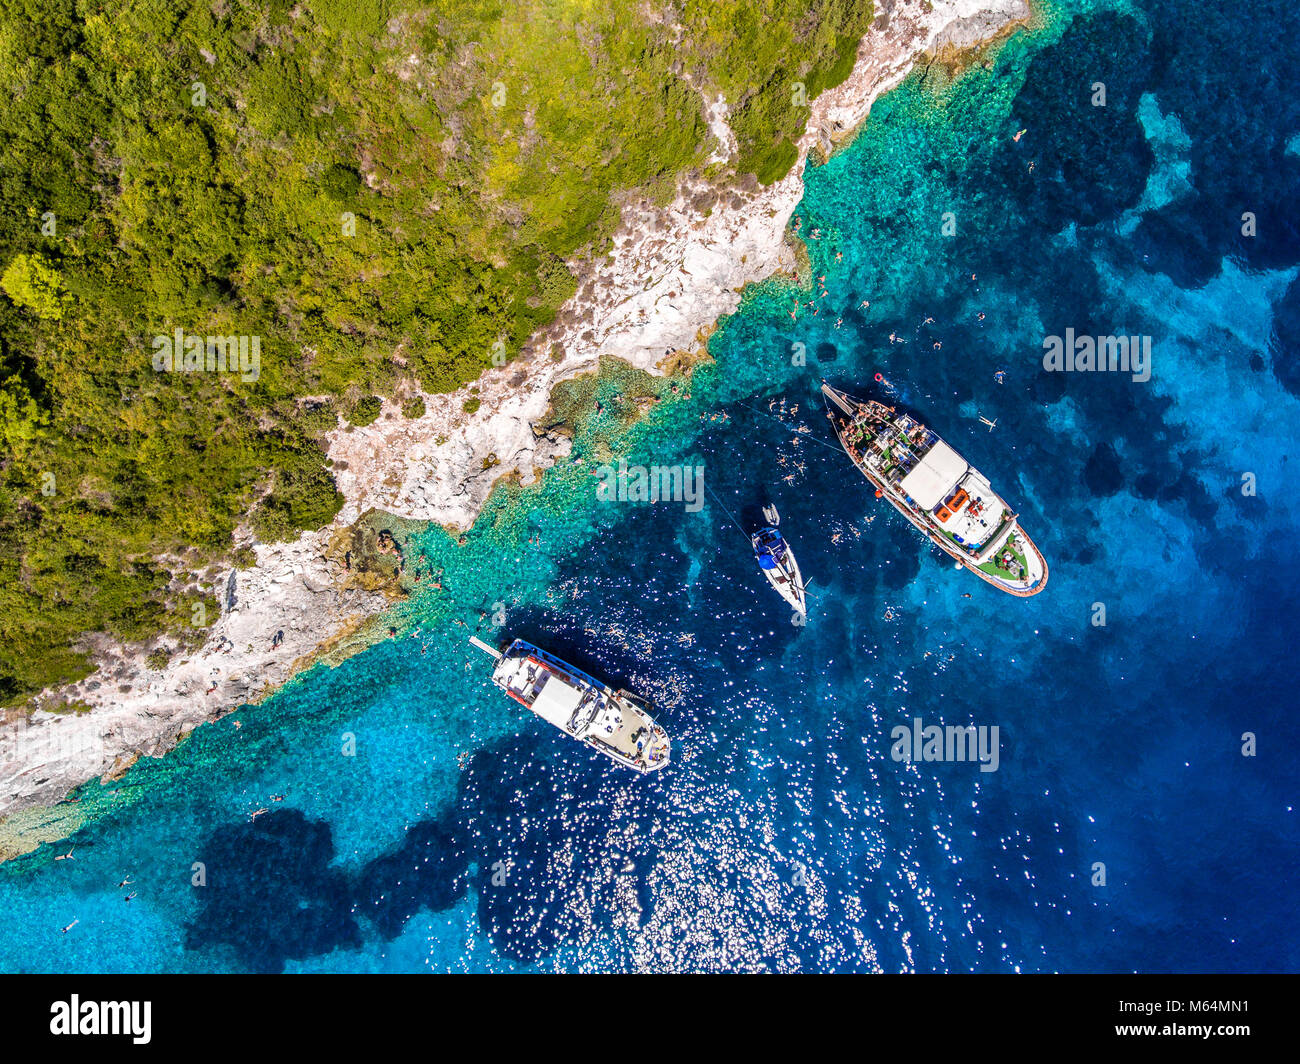 People swimming in the clear blue waters of Antipaxos Island, near Corfu - Kerkyra, Greece. Aerial view from a boat Stock Photo